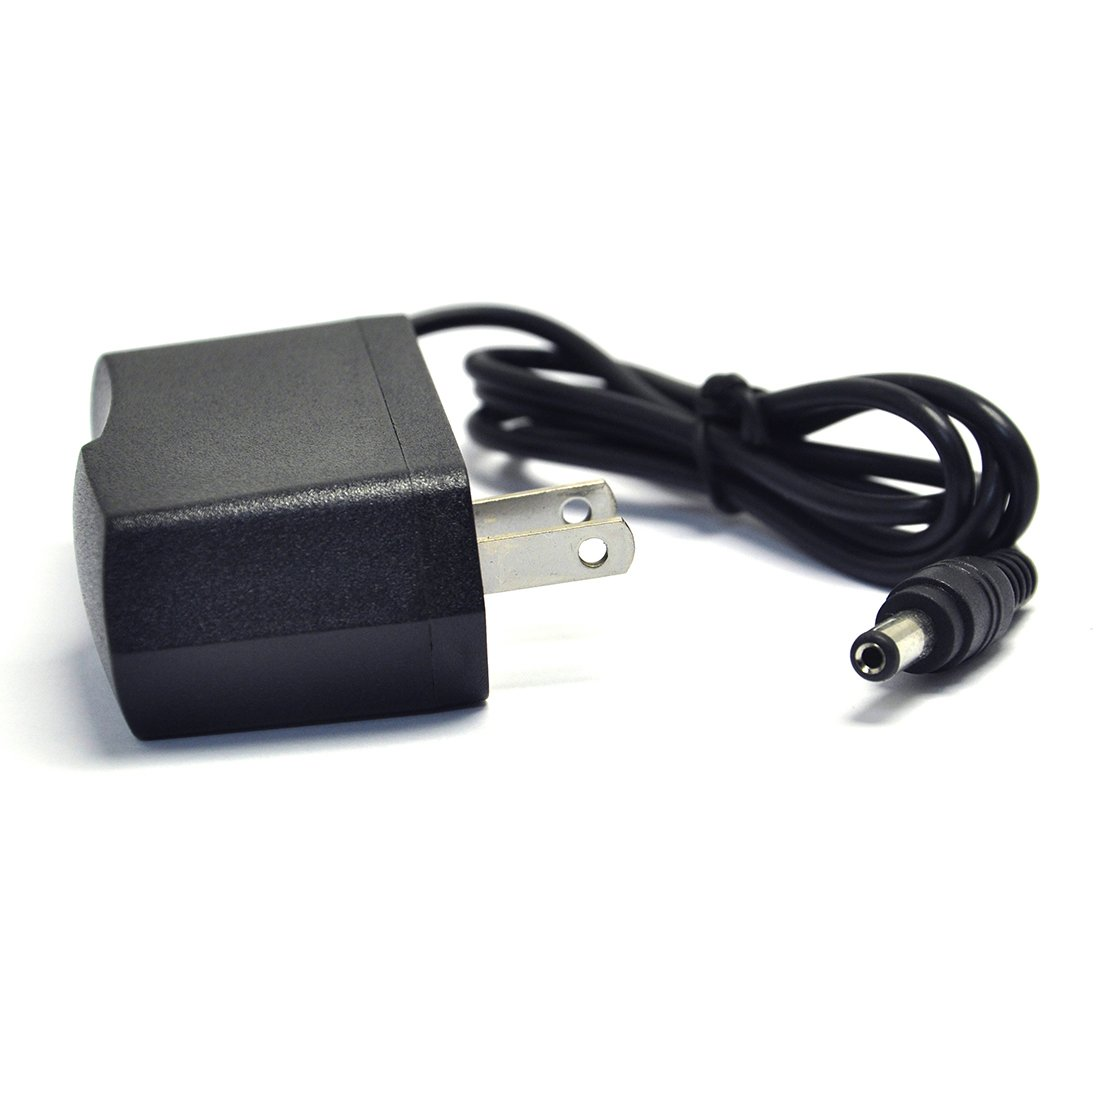 Gikfun AC 100-240V to DC 5V 2A 2000mA Switch Power Supply Converter Adapter US Plug AE1249 by Gikfun (Image #2)